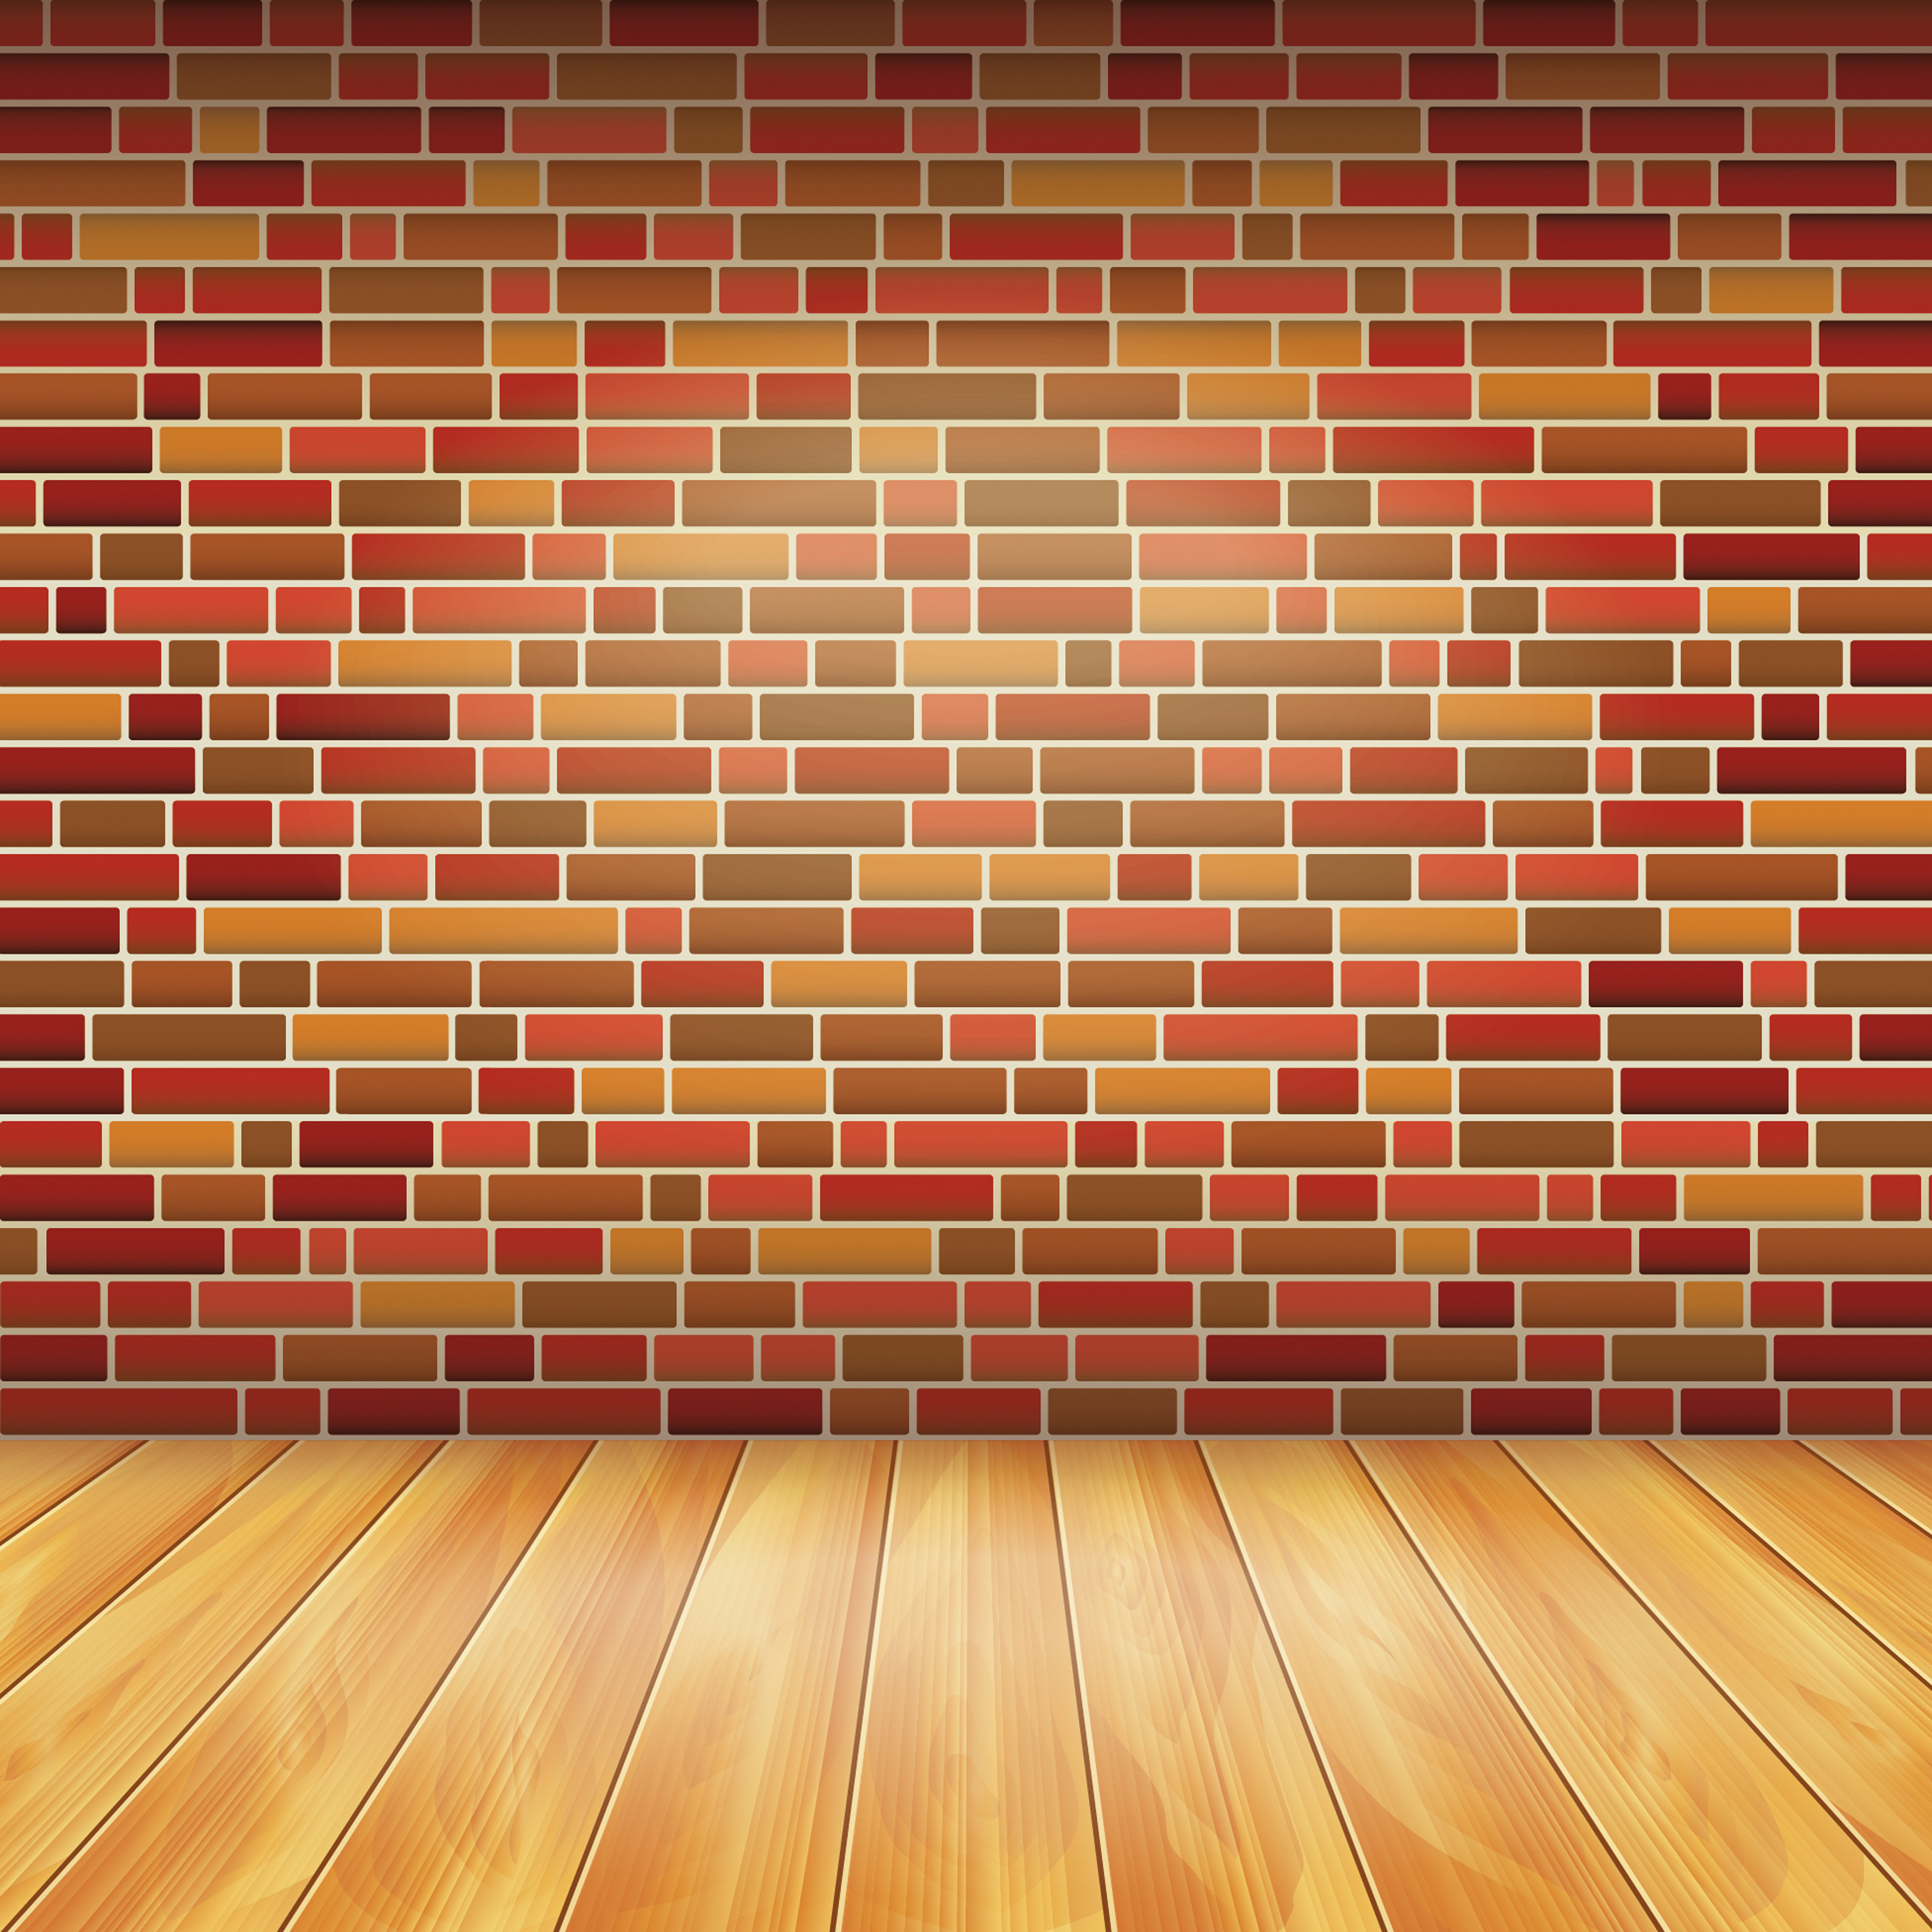 Brick_Wall_and_Wooden_Floor_Bacground.jpg?m=1399676400.